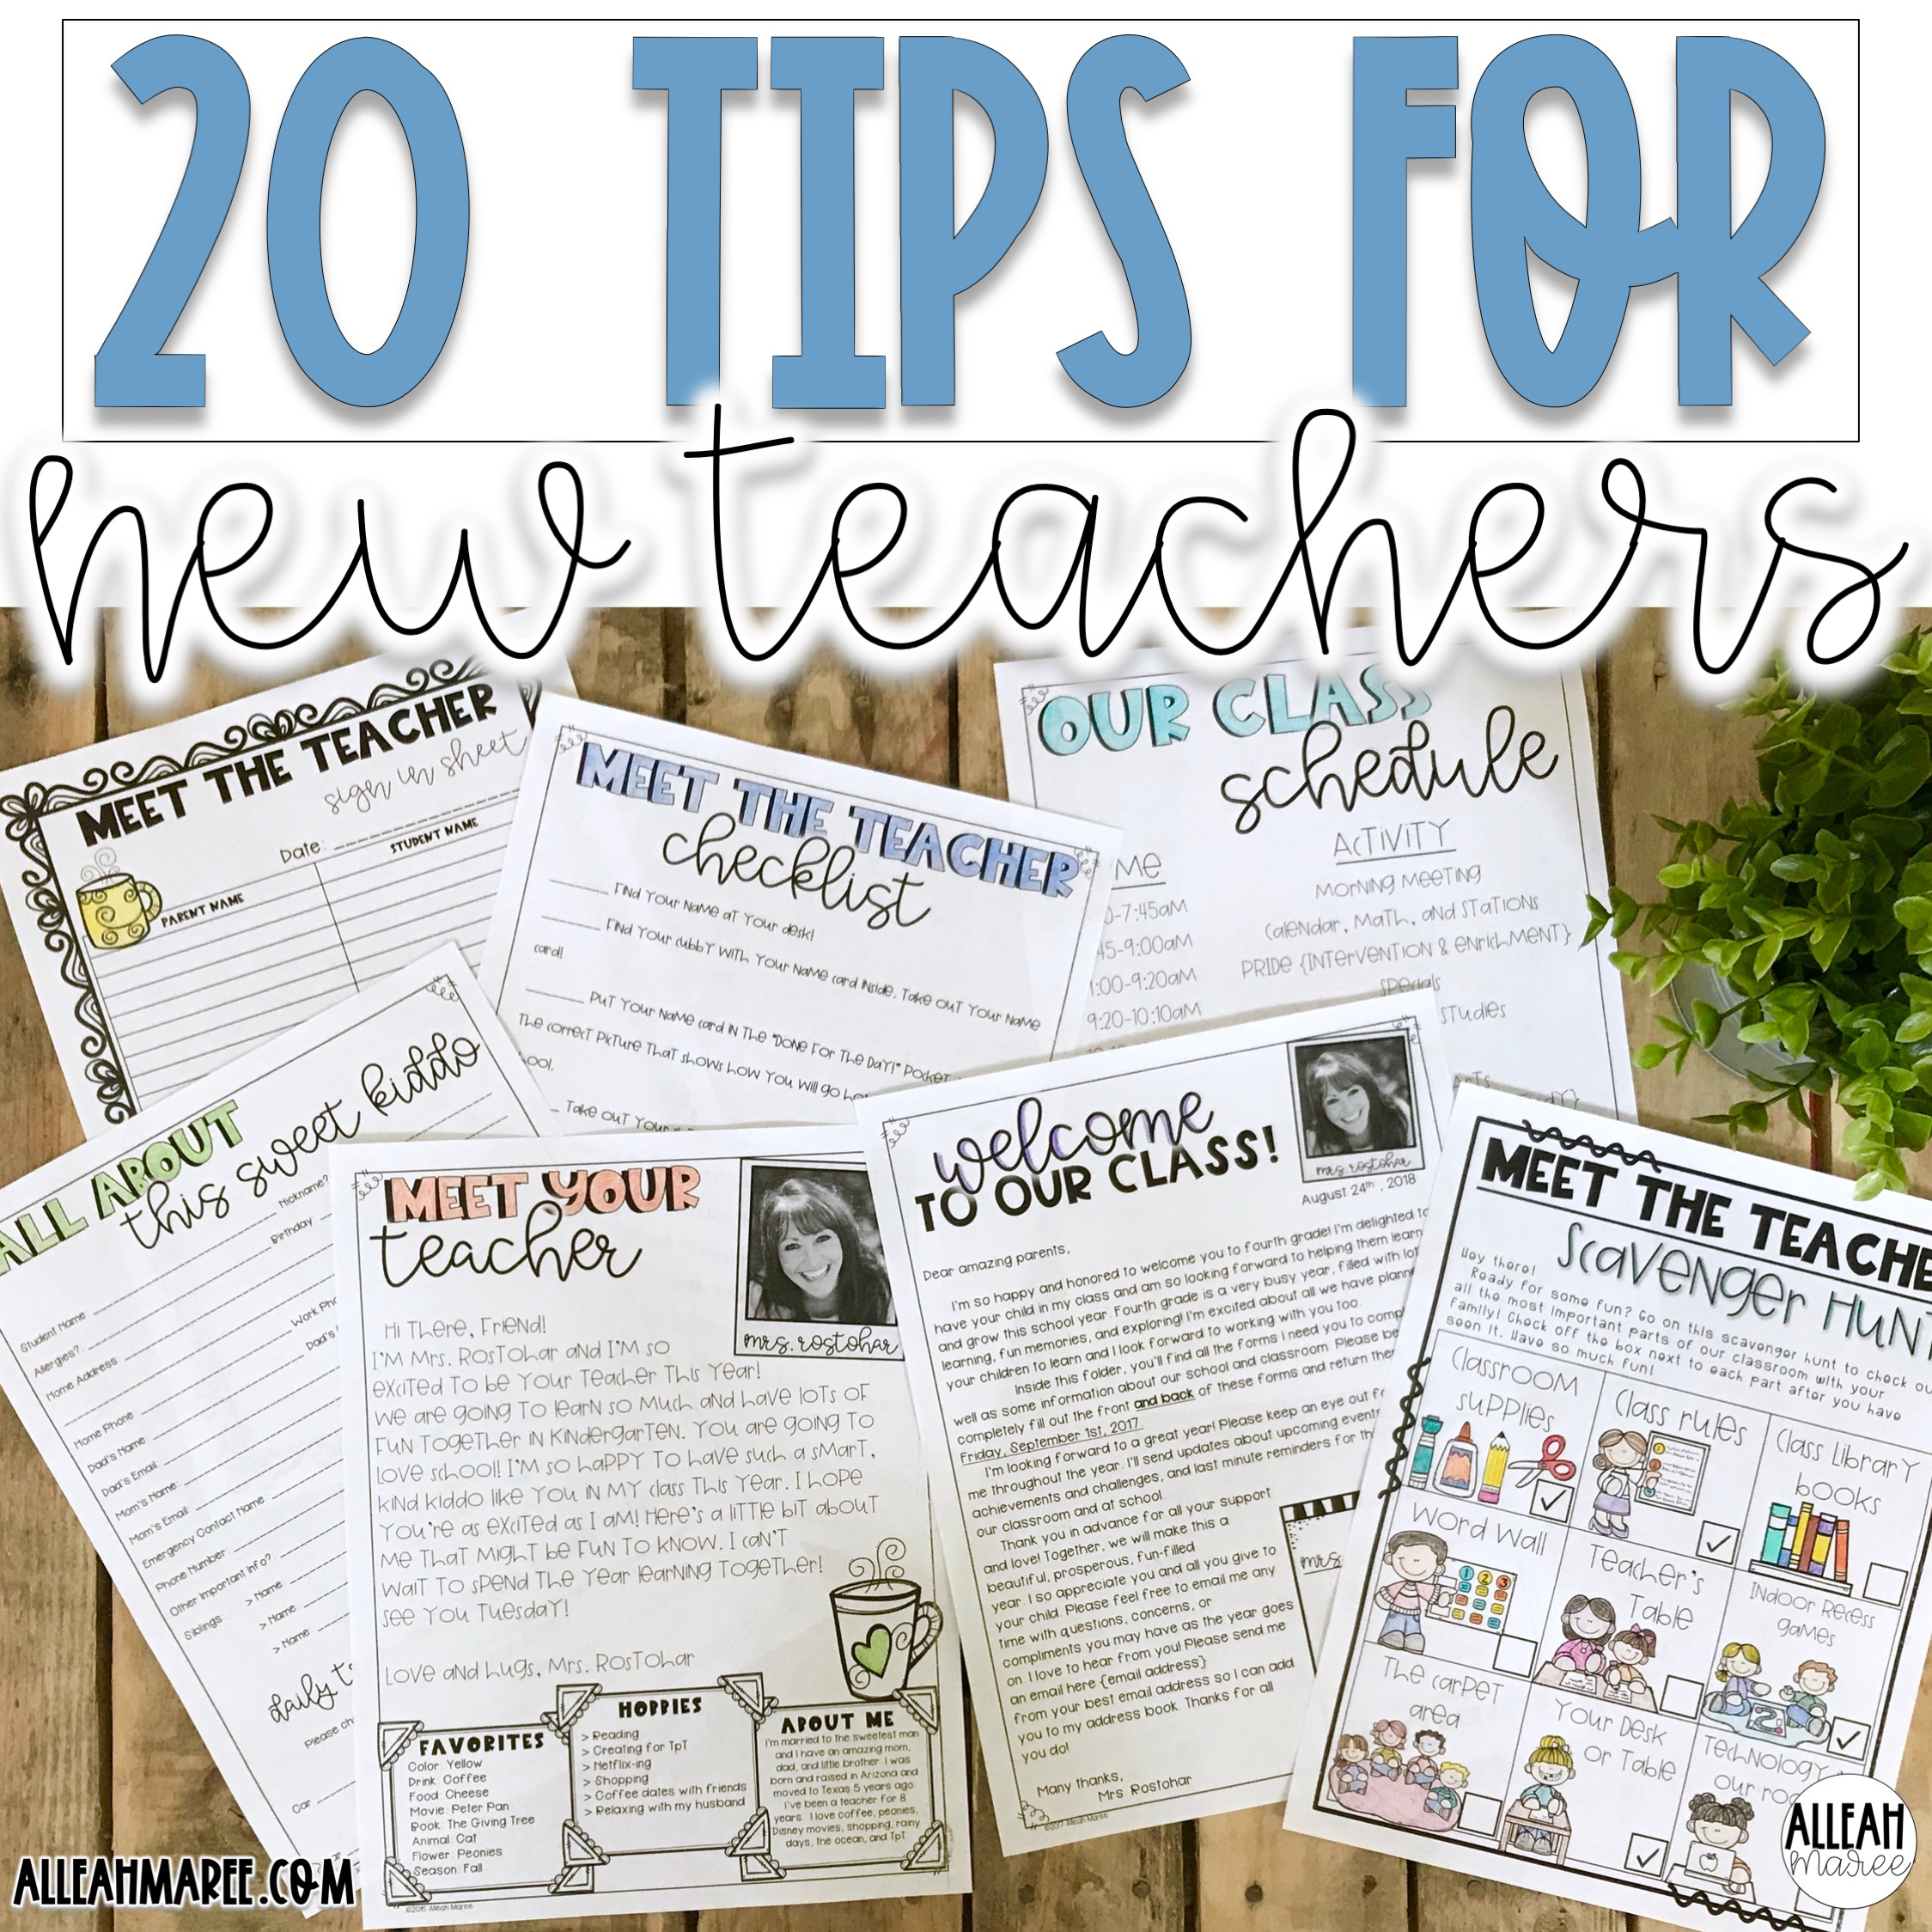 20 Tips for New Teachers — Alleah Maree